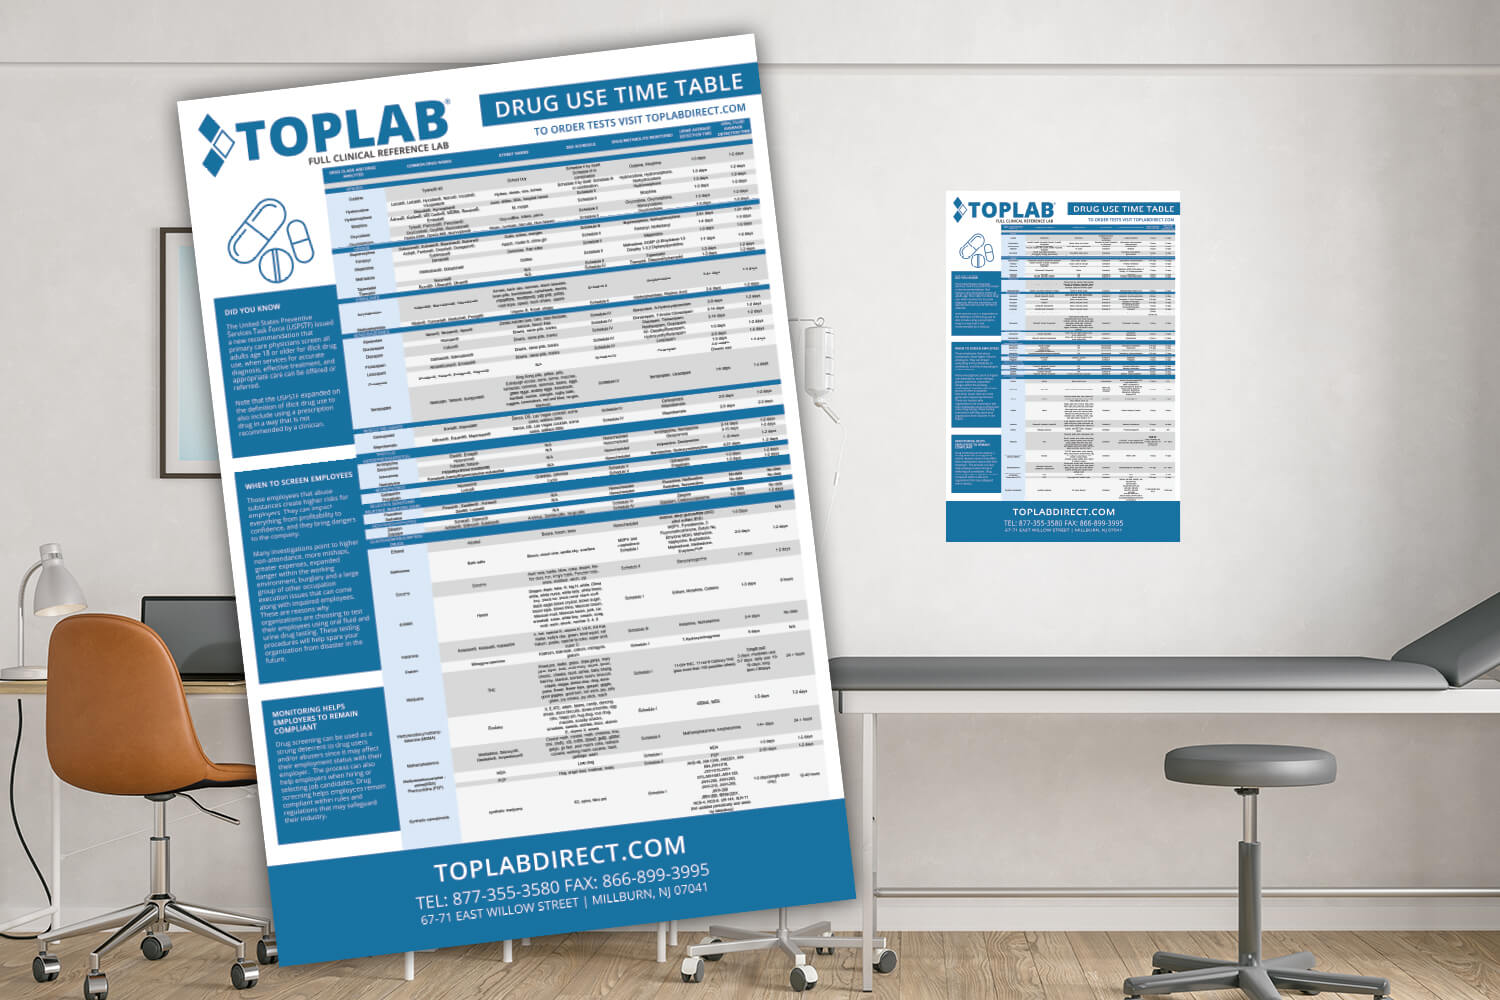 TOPLAB® drug use timetable